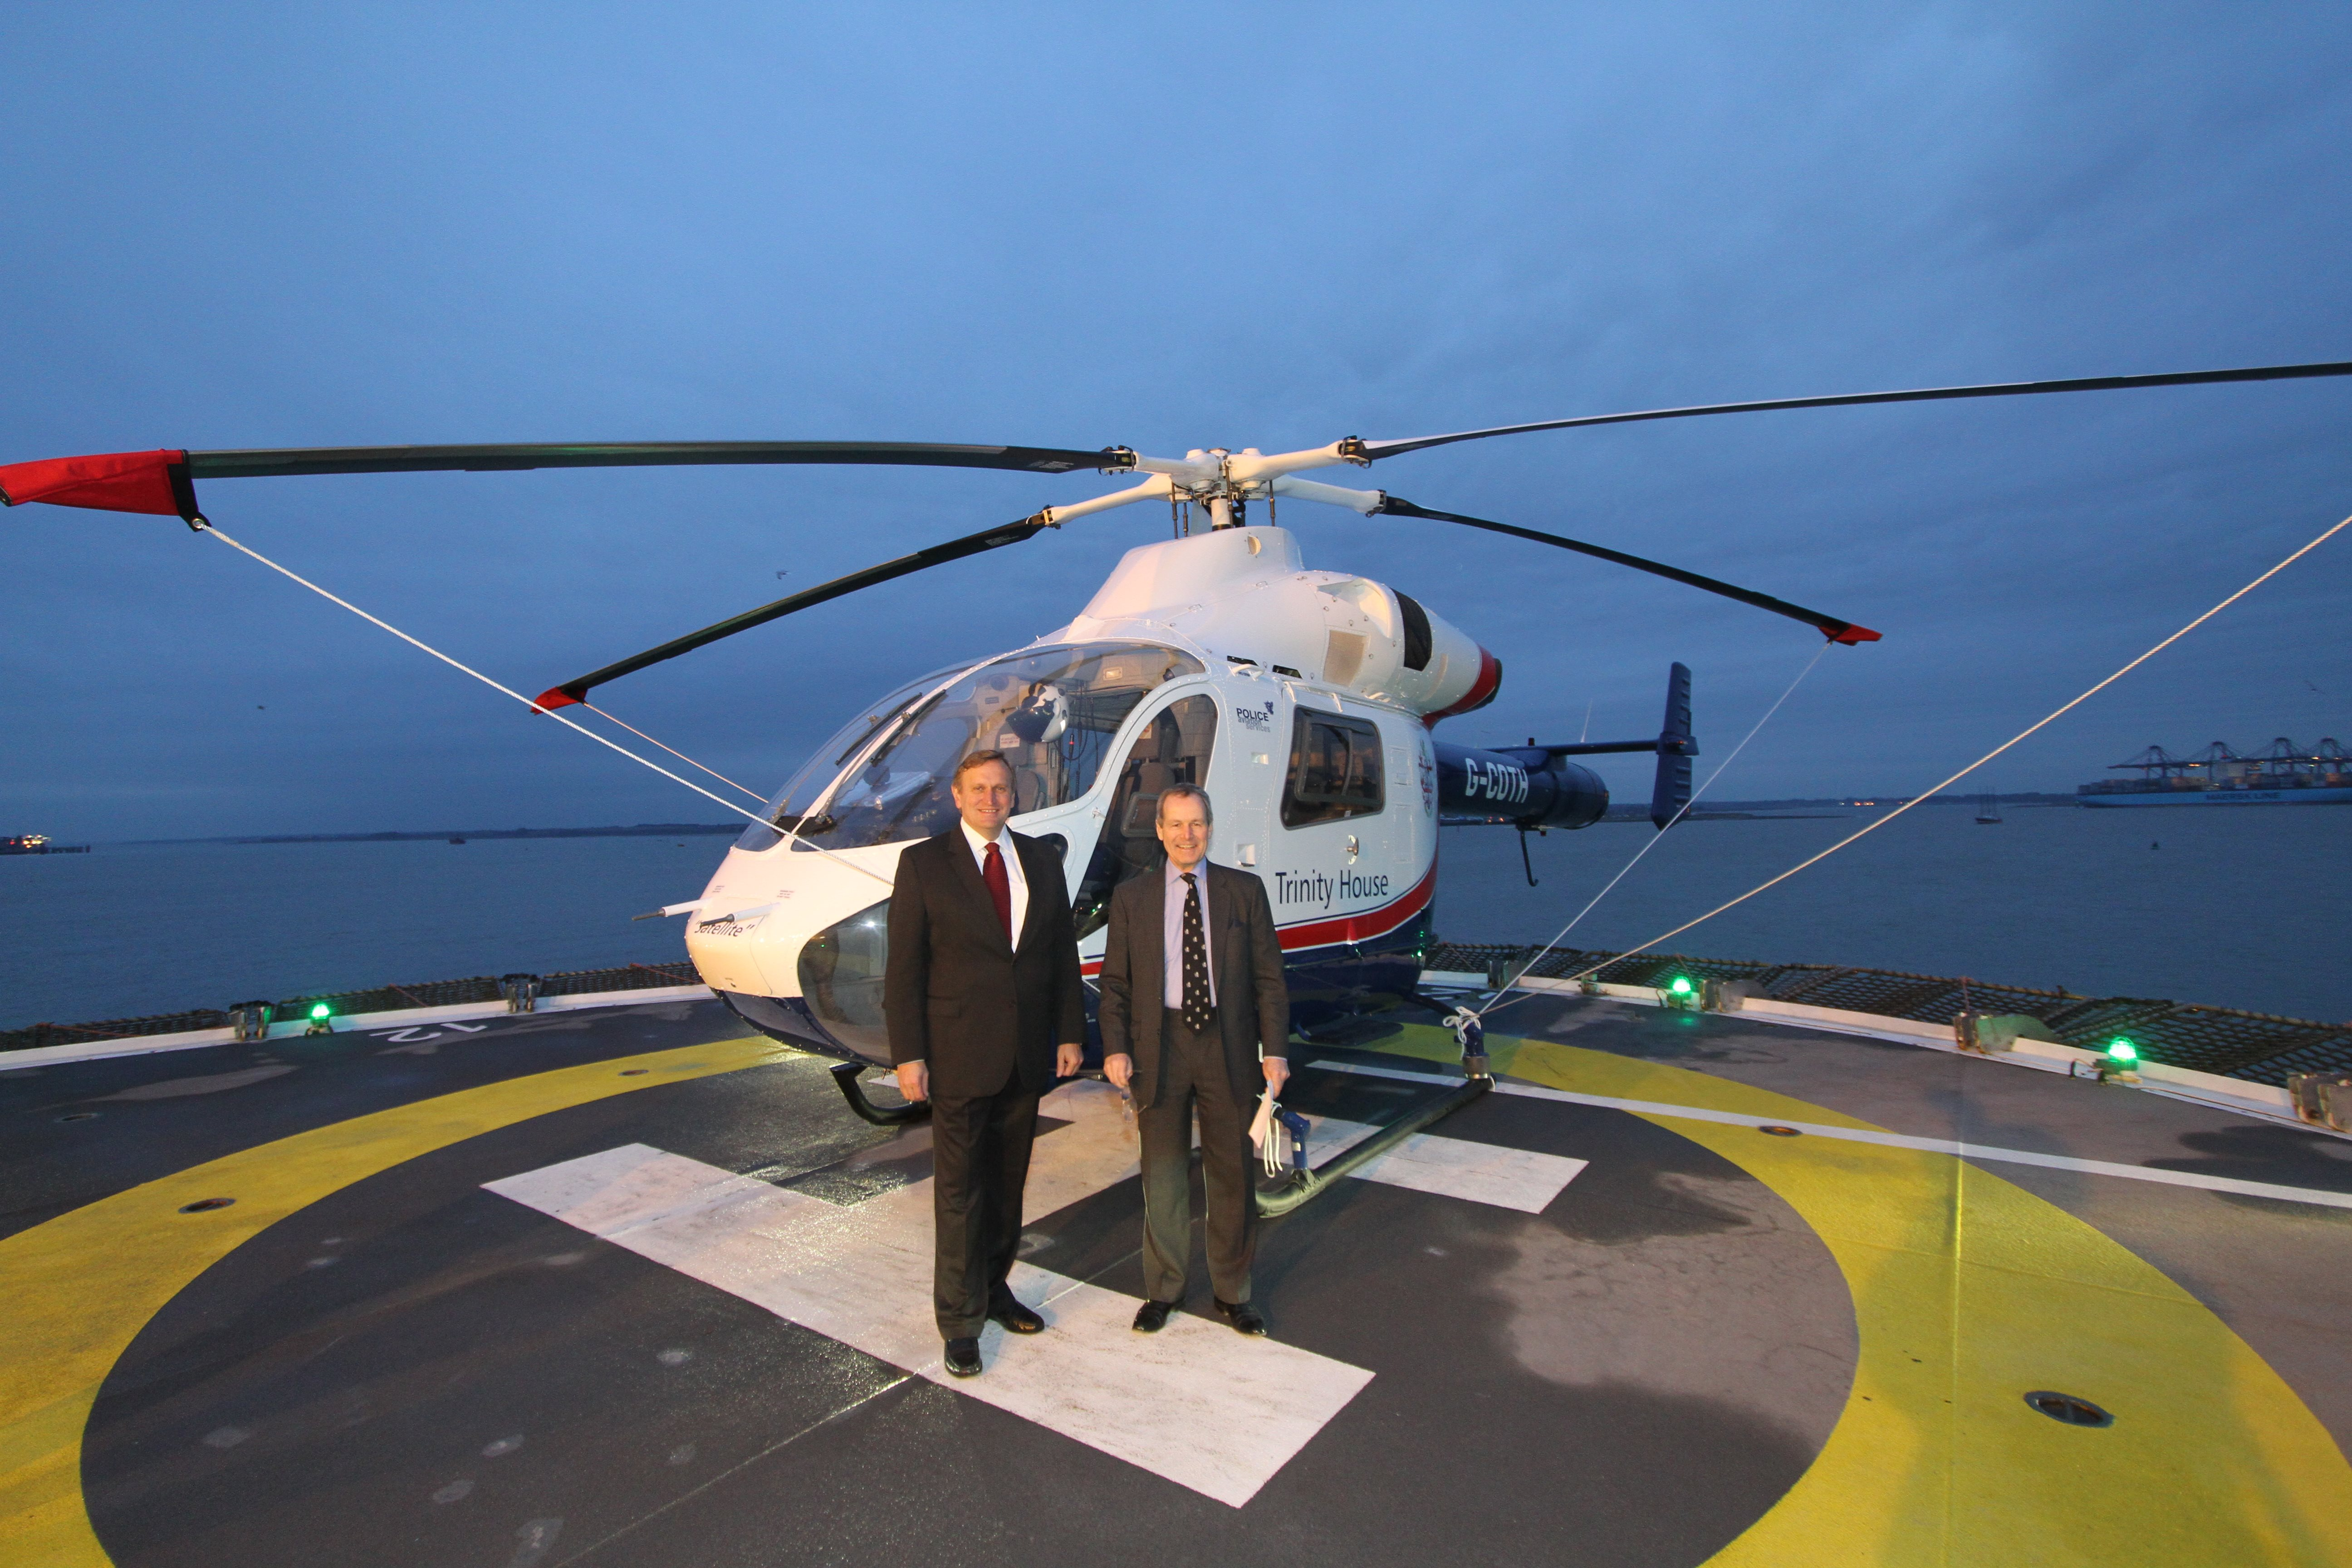 SAS signs a contract to support the offshore operations of Trinity House using the MD 902.